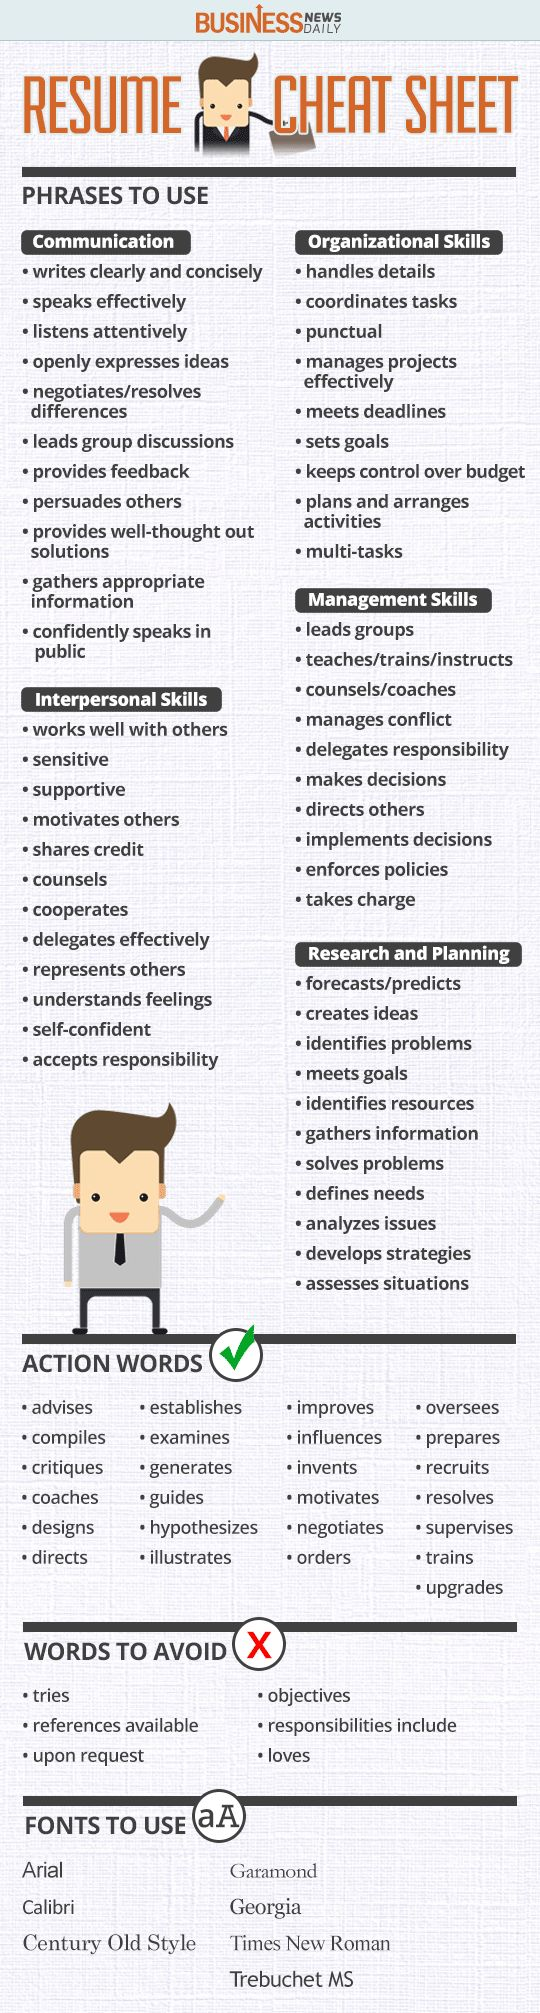 Opposenewapstandardsus  Gorgeous  Ideas About Resume On Pinterest  Cv Format Resume Cv And  With Great Resume Cheat Sheet Infographic Andrews Almost Done With A Complete Unit On Employment Which With Beauteous Nursing Objective Resume Also Free Creative Resume Templates Download In Addition Resume Address Format And Patient Care Assistant Resume As Well As Current Resume Format Additionally Sql Server Developer Resume From Pinterestcom With Opposenewapstandardsus  Great  Ideas About Resume On Pinterest  Cv Format Resume Cv And  With Beauteous Resume Cheat Sheet Infographic Andrews Almost Done With A Complete Unit On Employment Which And Gorgeous Nursing Objective Resume Also Free Creative Resume Templates Download In Addition Resume Address Format From Pinterestcom